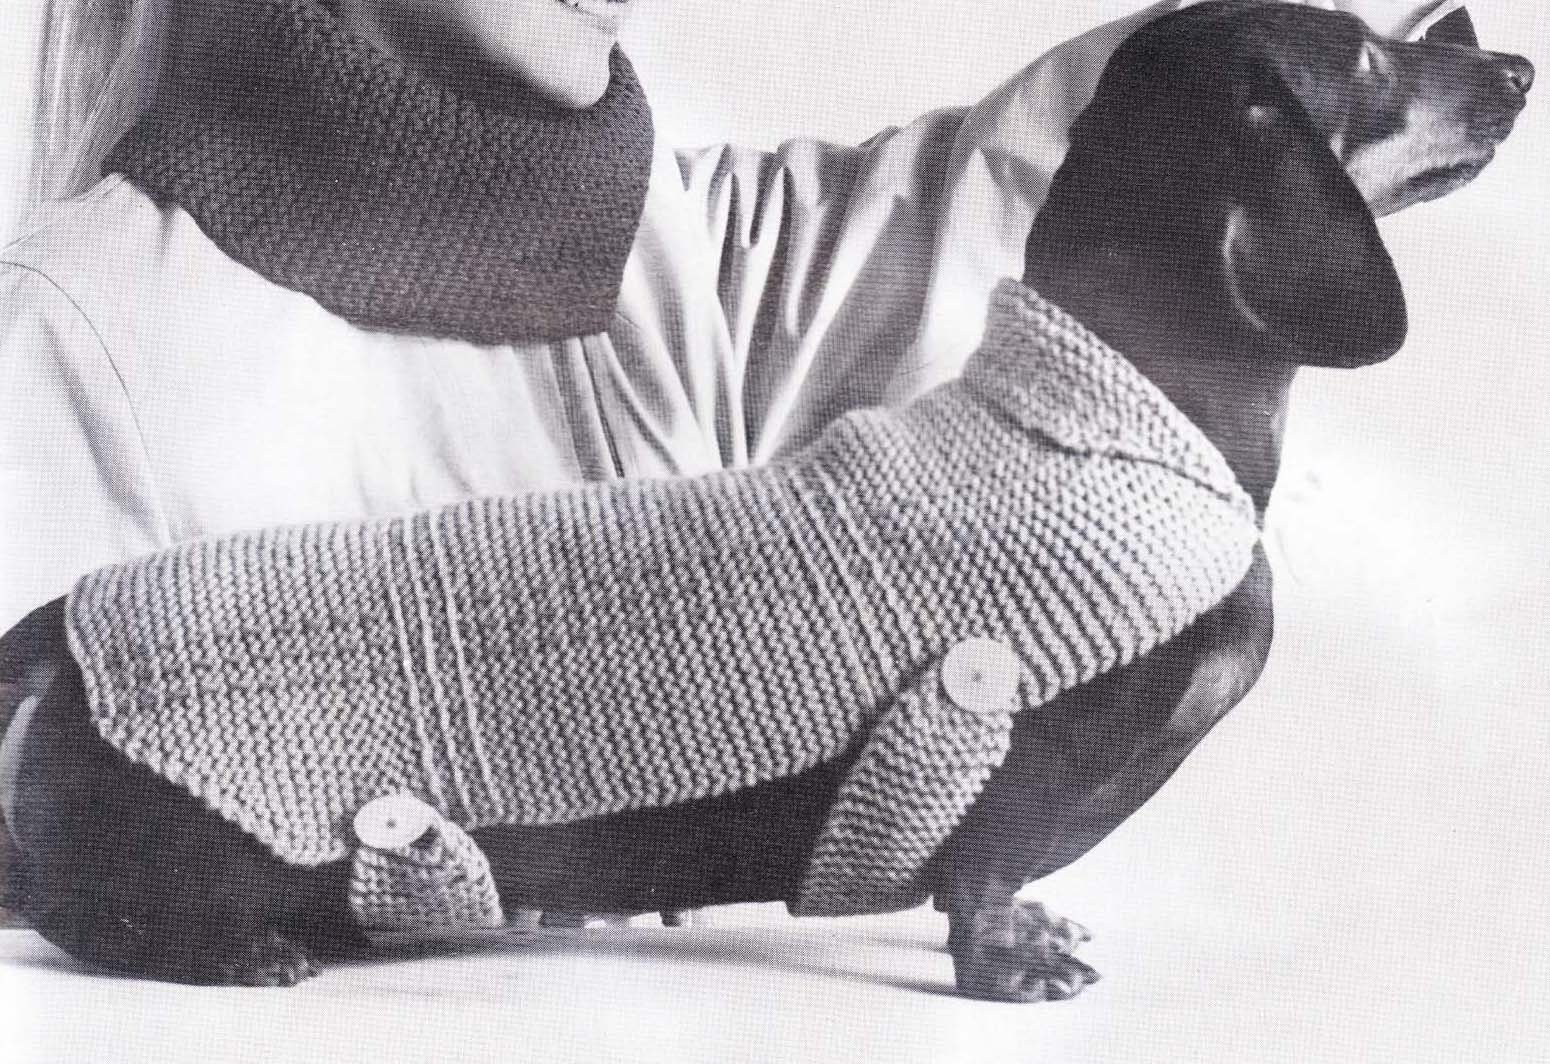 Dachshund Jumper Knitting Pattern Dachshund Crochet Pattern Crochet And Knitting Patterns